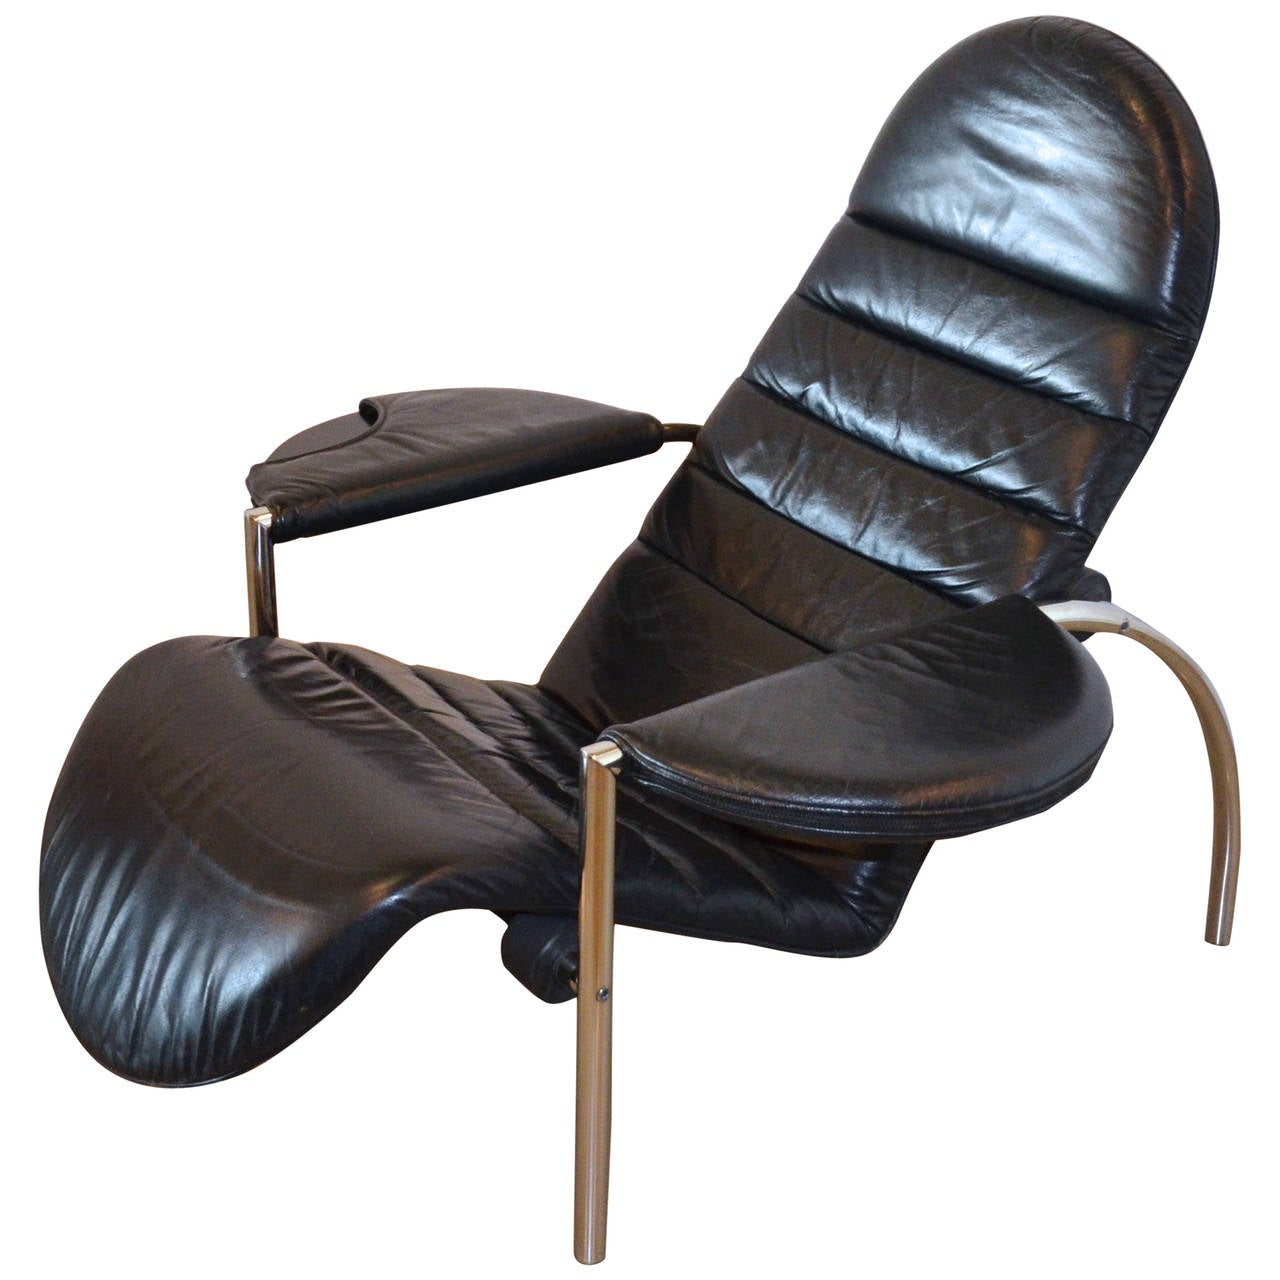 Moroso italian modern reclining chair circa 1980s at 1stdibs for 1980s chair